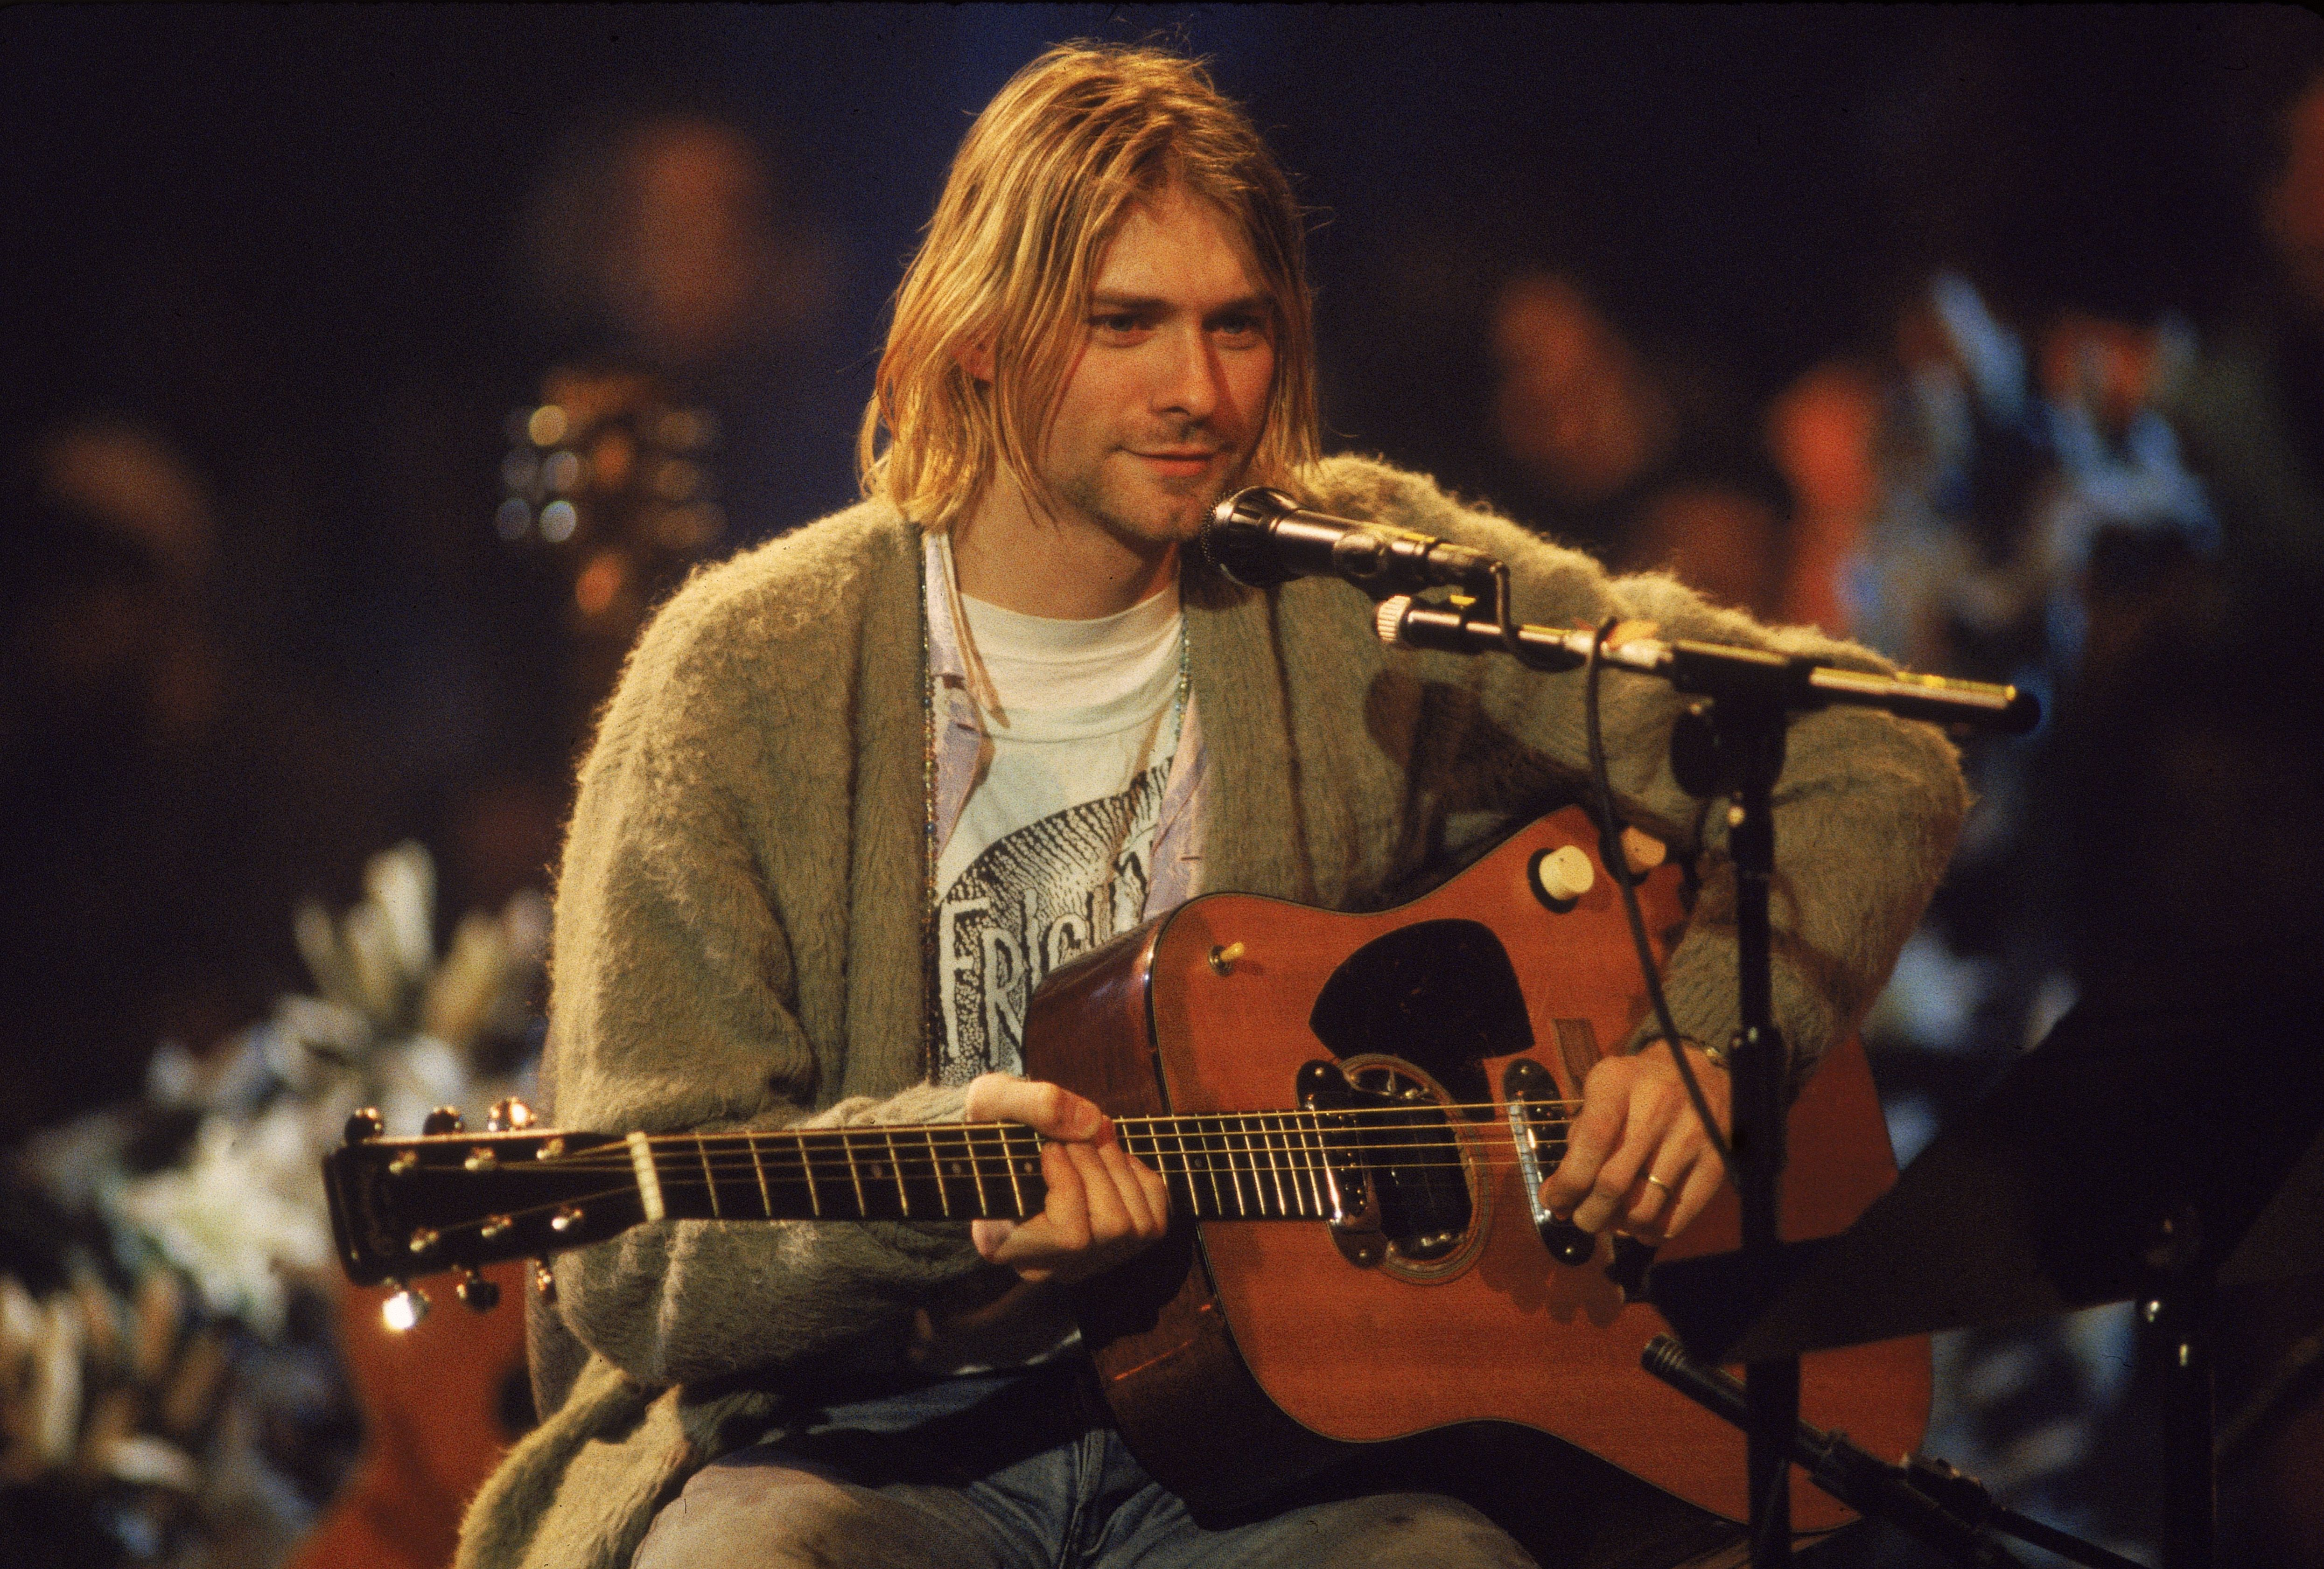 """Kurt Cobain performs with his group Nirvana at a taping of the television program """"MTV Unplugged."""" 